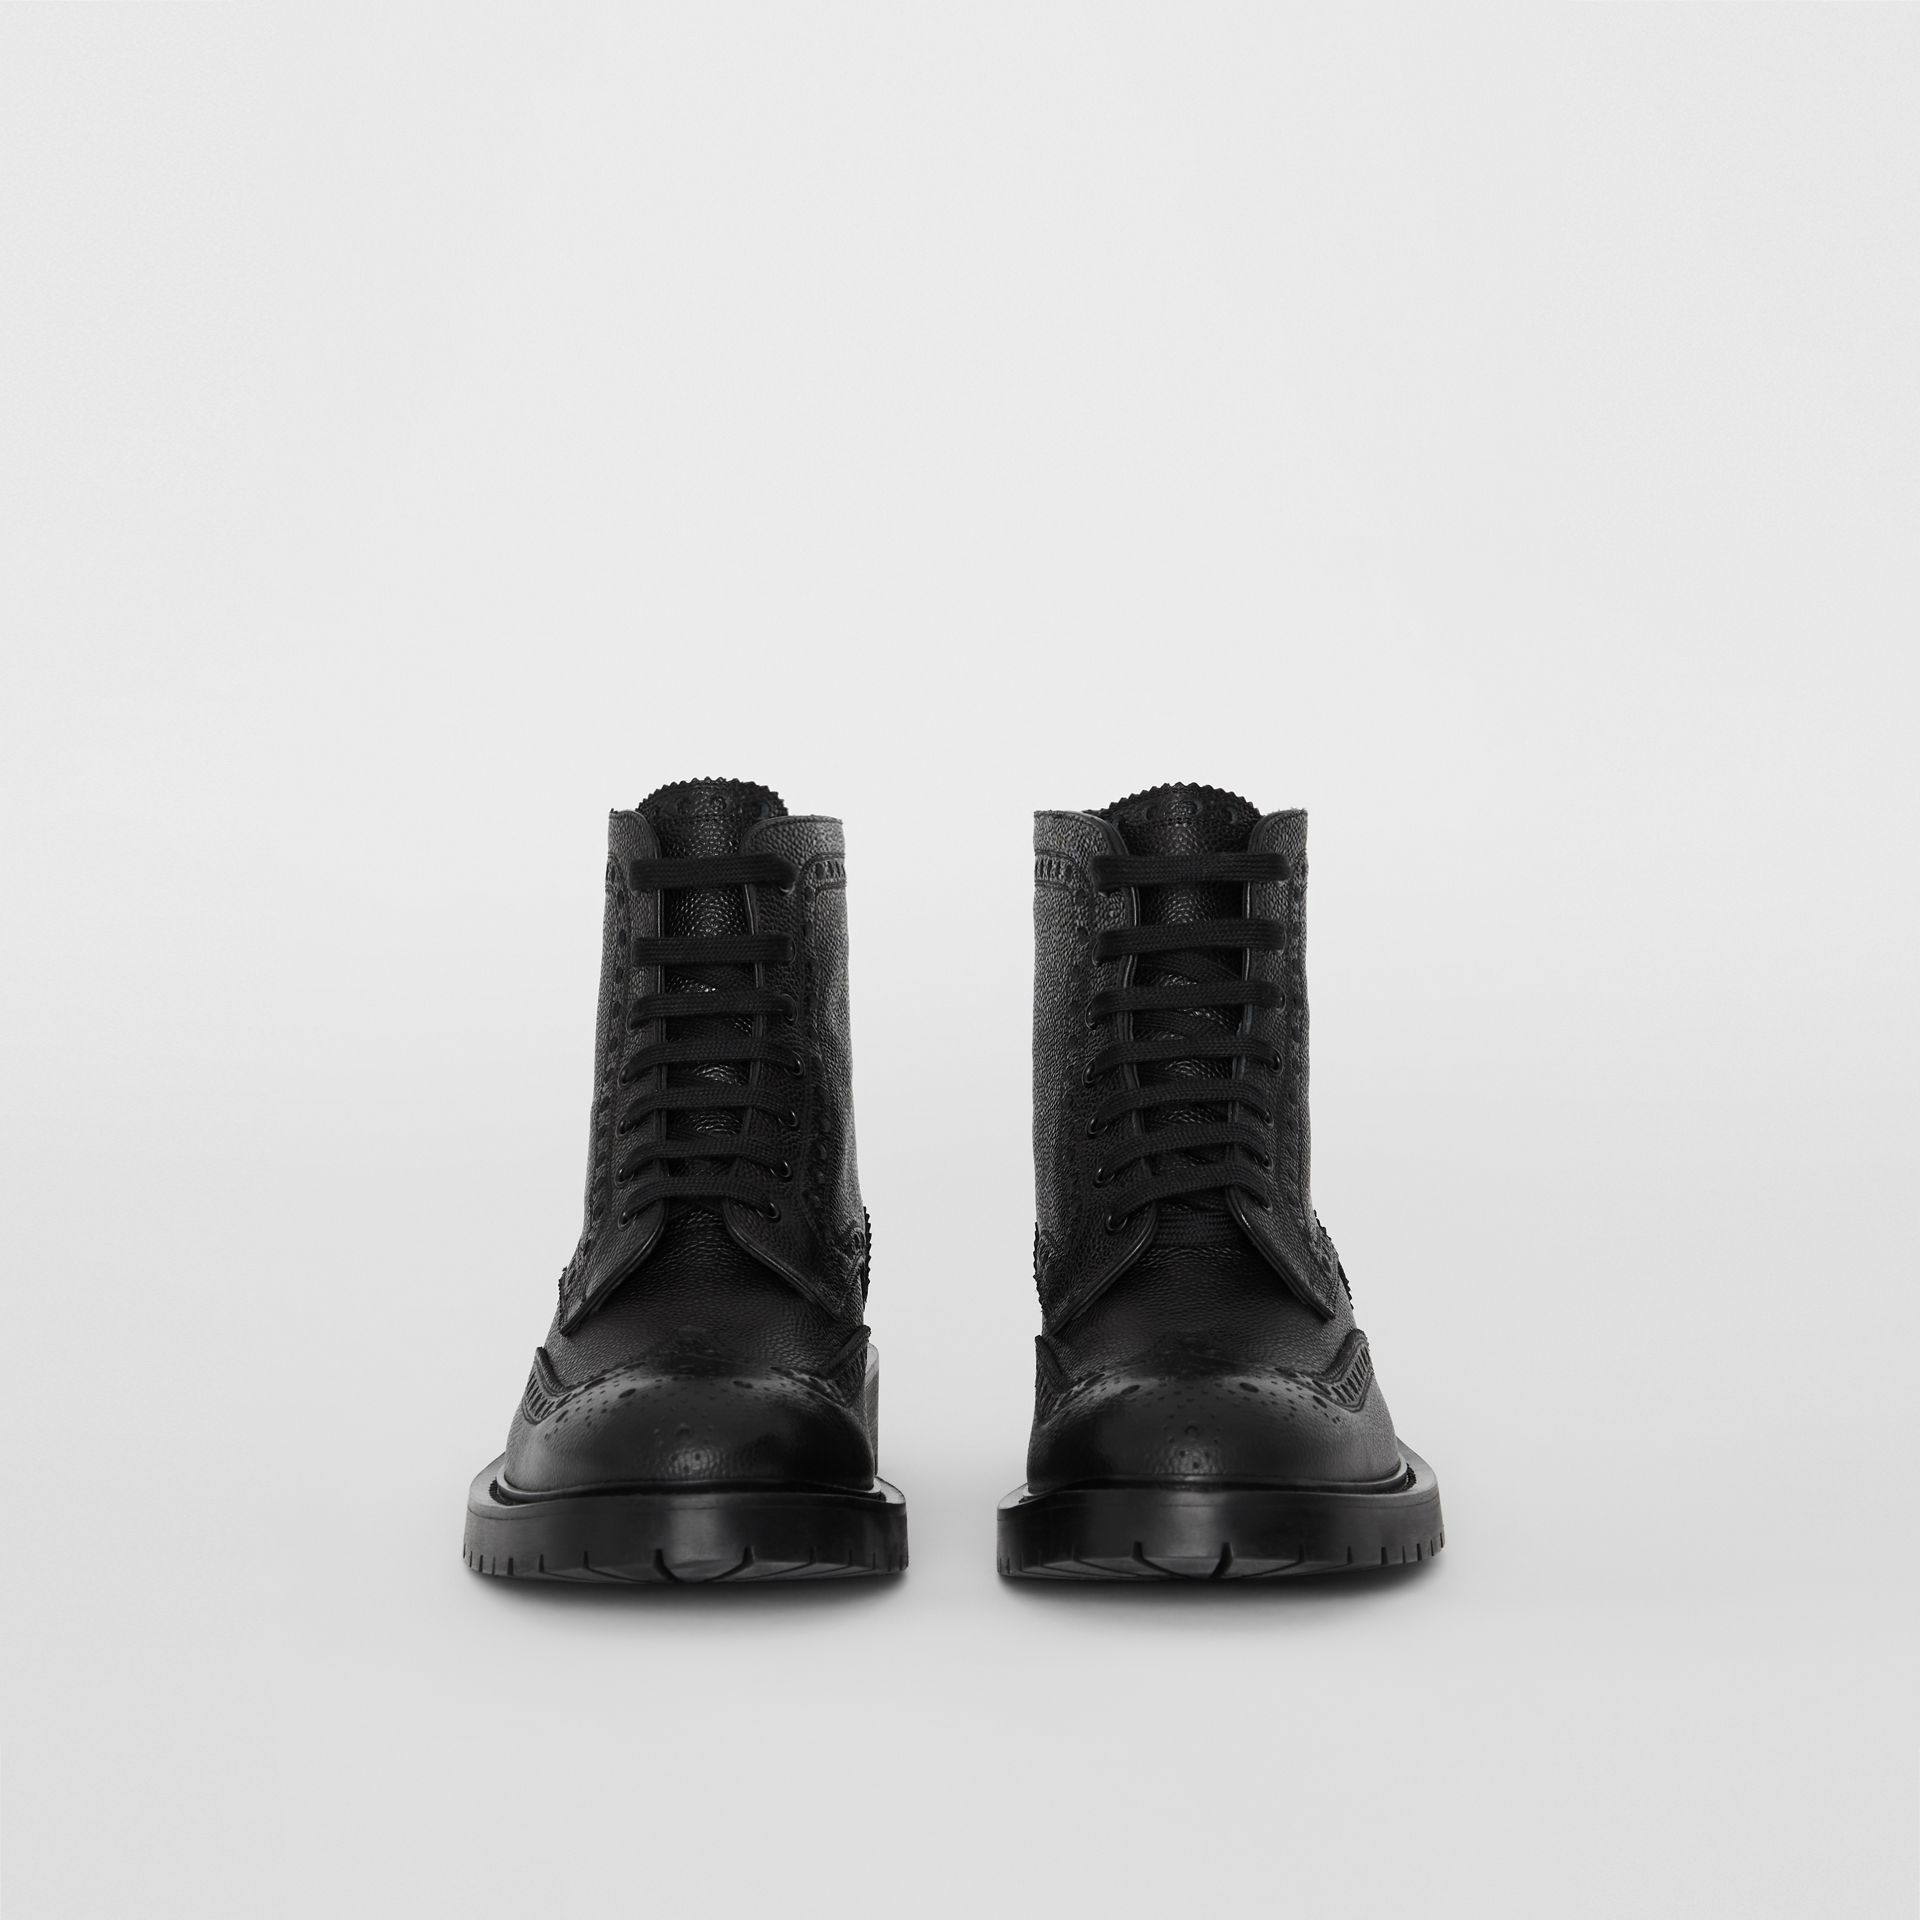 Brogue Detail Grainy Leather Boots in Black - Men | Burberry Singapore - gallery image 3